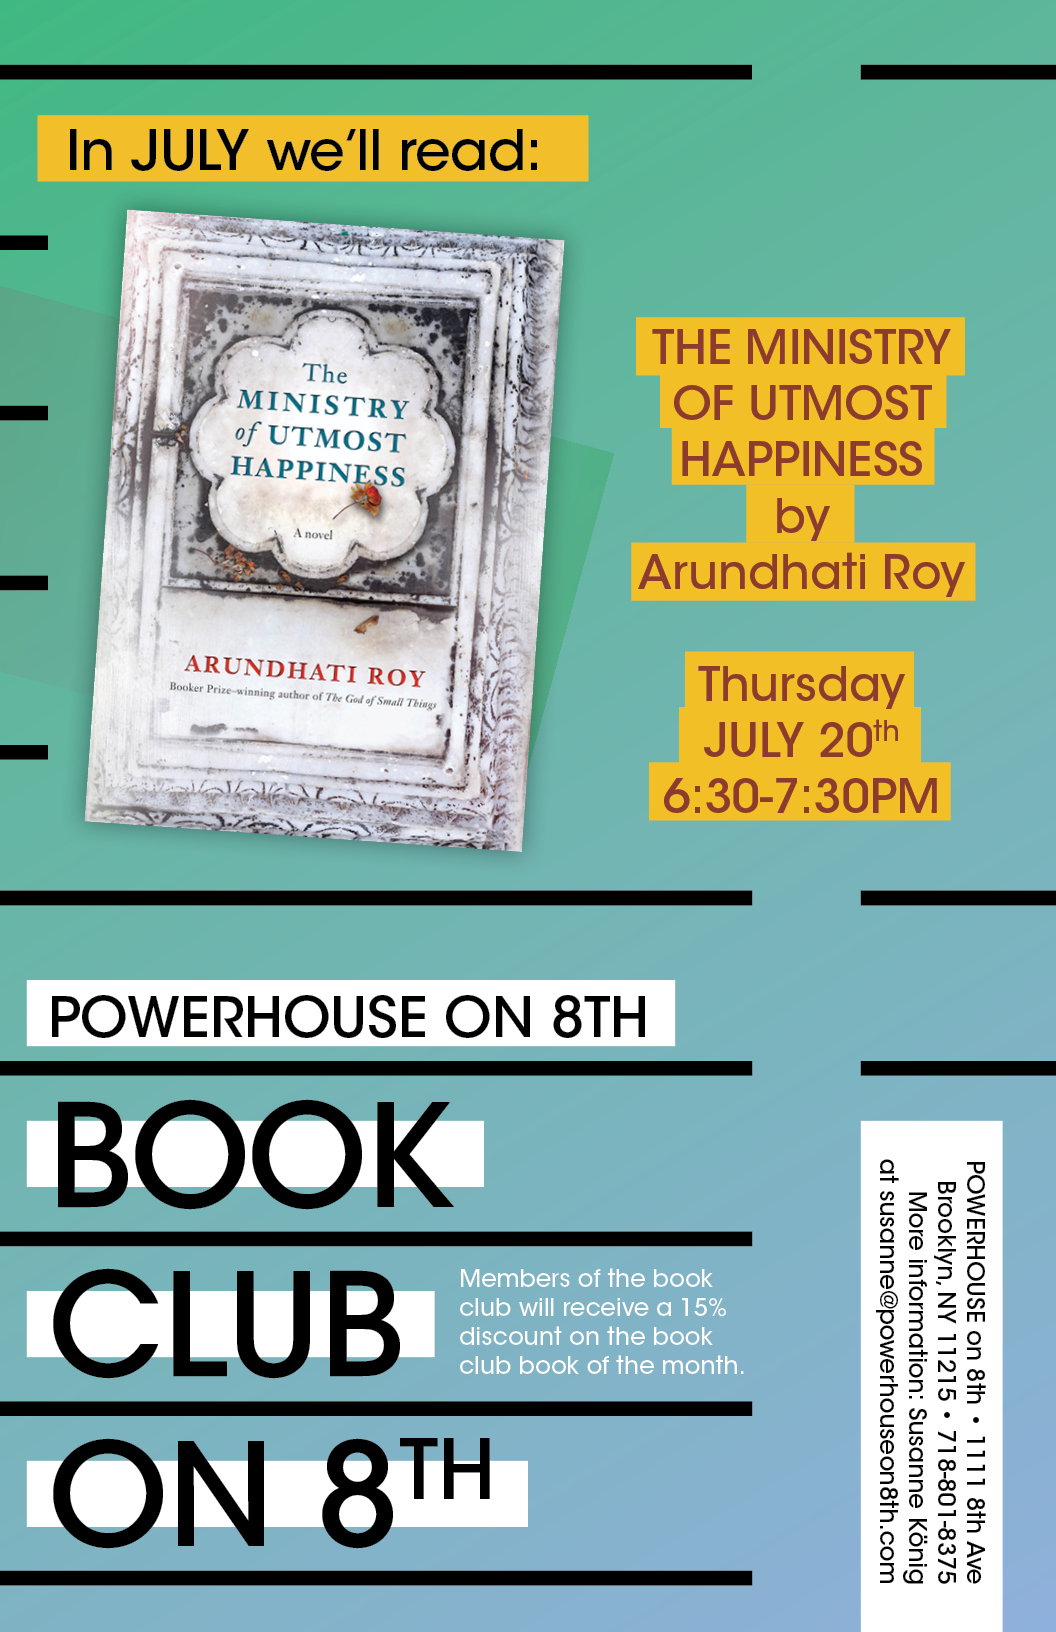 Book Club on 8th: The Ministry of Utmost Happiness by Arundhati Roy